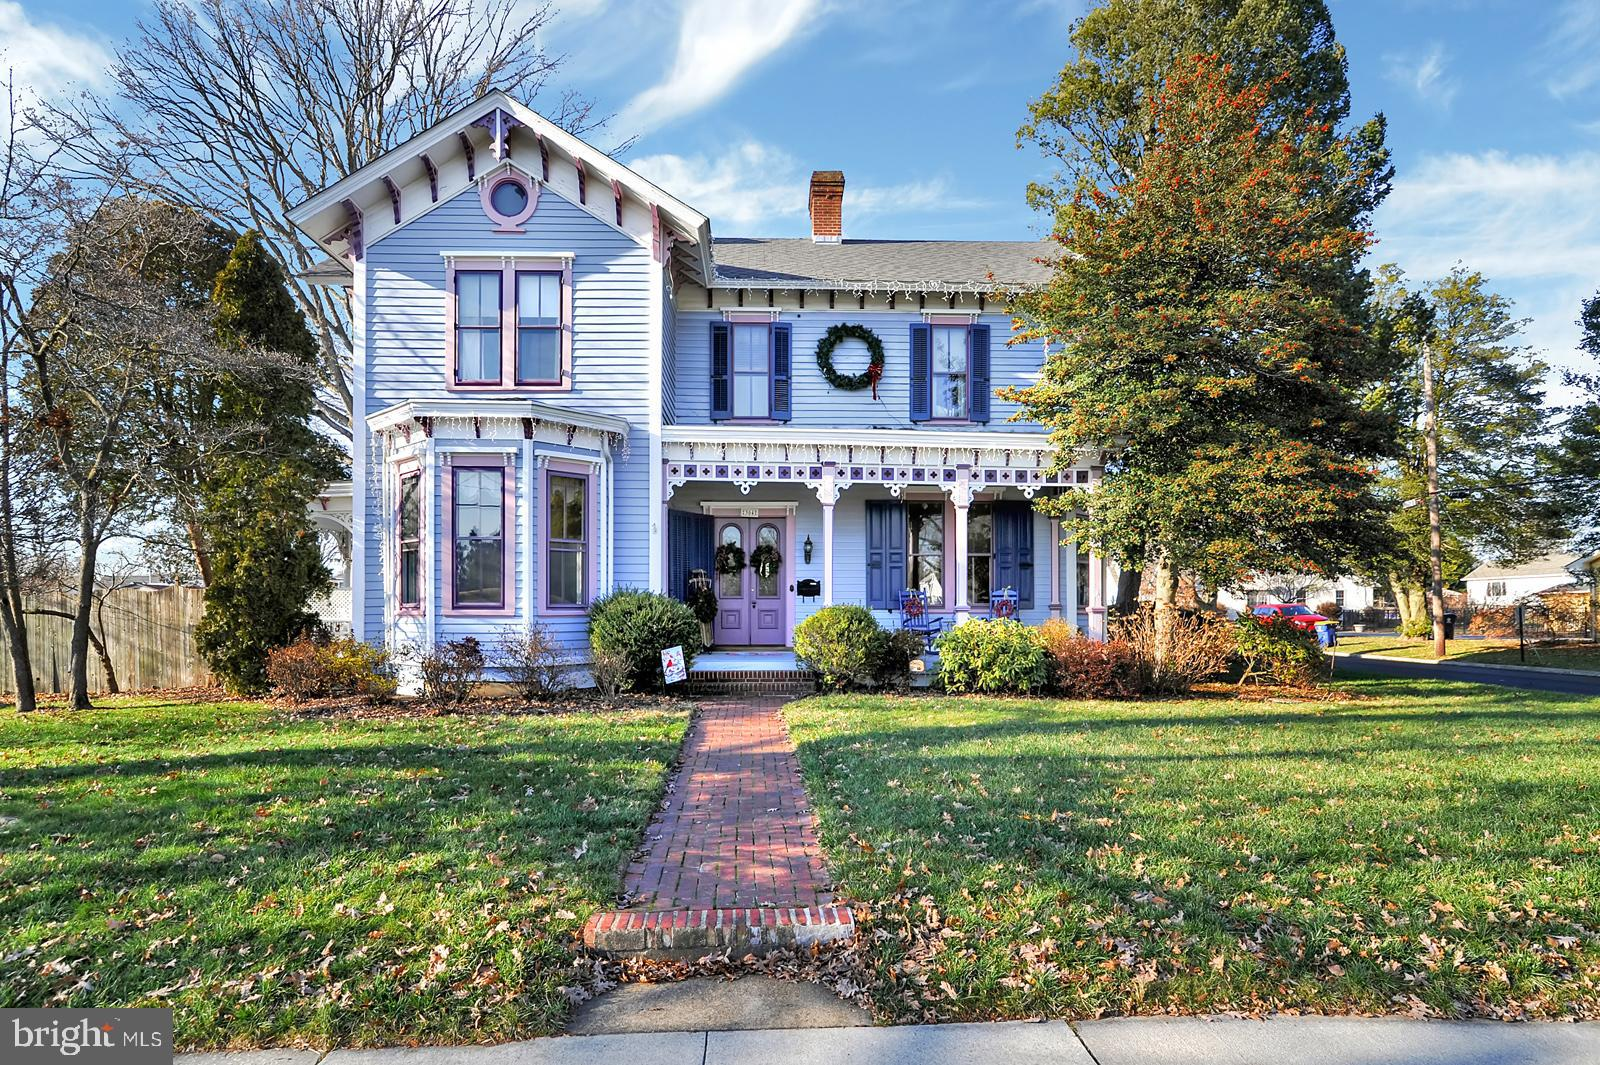 """Absolutely stunning restored Victorian home in the heart of Smyrna that is listed on the National Historical register! This home has been lovingly maintained and updated. The large welcoming front porch leads to a warm and open foyer with beautiful, pine, wide-plank, refinished, hard wood floors and a sparkling crystal chandelier. To the left you will find a large, well-appointed family room with a walk out bay window that still has the original plaster moldings and custom-made antique wood shutters, and fully functioning black marble fireplace. Across the hall is the Billiard room with a fully functioning white marble fireplace, antique light fixture, and walk-out bay window with the same original plaster moldings and antique wood shutters. The wood flooring throughout the first floor has been recently refinished as well as the front staircase and the second floor hallway. Most of the first floor has been recently repainted and features 11 foot ceilings, 8 foot ornate, solid wood, interior doors, original hardware, and crown molding. The large, formal dining room features a brick fireplace with a gas log insert, and access to the charming  """"wedding cake"""" side porch.The kitchen has been relocated and completely transformed! There are white raised-panel cabinets, a gas range with an exhaust hood, side by side stainless steel refrigerator, wall oven, dishwasher, built-in shelving, glass-front cabinets, granite counter tops, a window seat, and a wood ceiling. There is also access to the unfinished service basement. Just off the kitchen, a French door leads to a first floor office. You will also find a laundry room, full bath, and mudroom that leads to the HUGE garage with a walk-up attic storage space.The second floor master bedroom offers another brick fireplace, double closets, a window seat, and beautiful wood floors. There are three more bedrooms and two full baths upstairs and a second staircase that takes you back to the first floor.Outside you will find an enorm"""